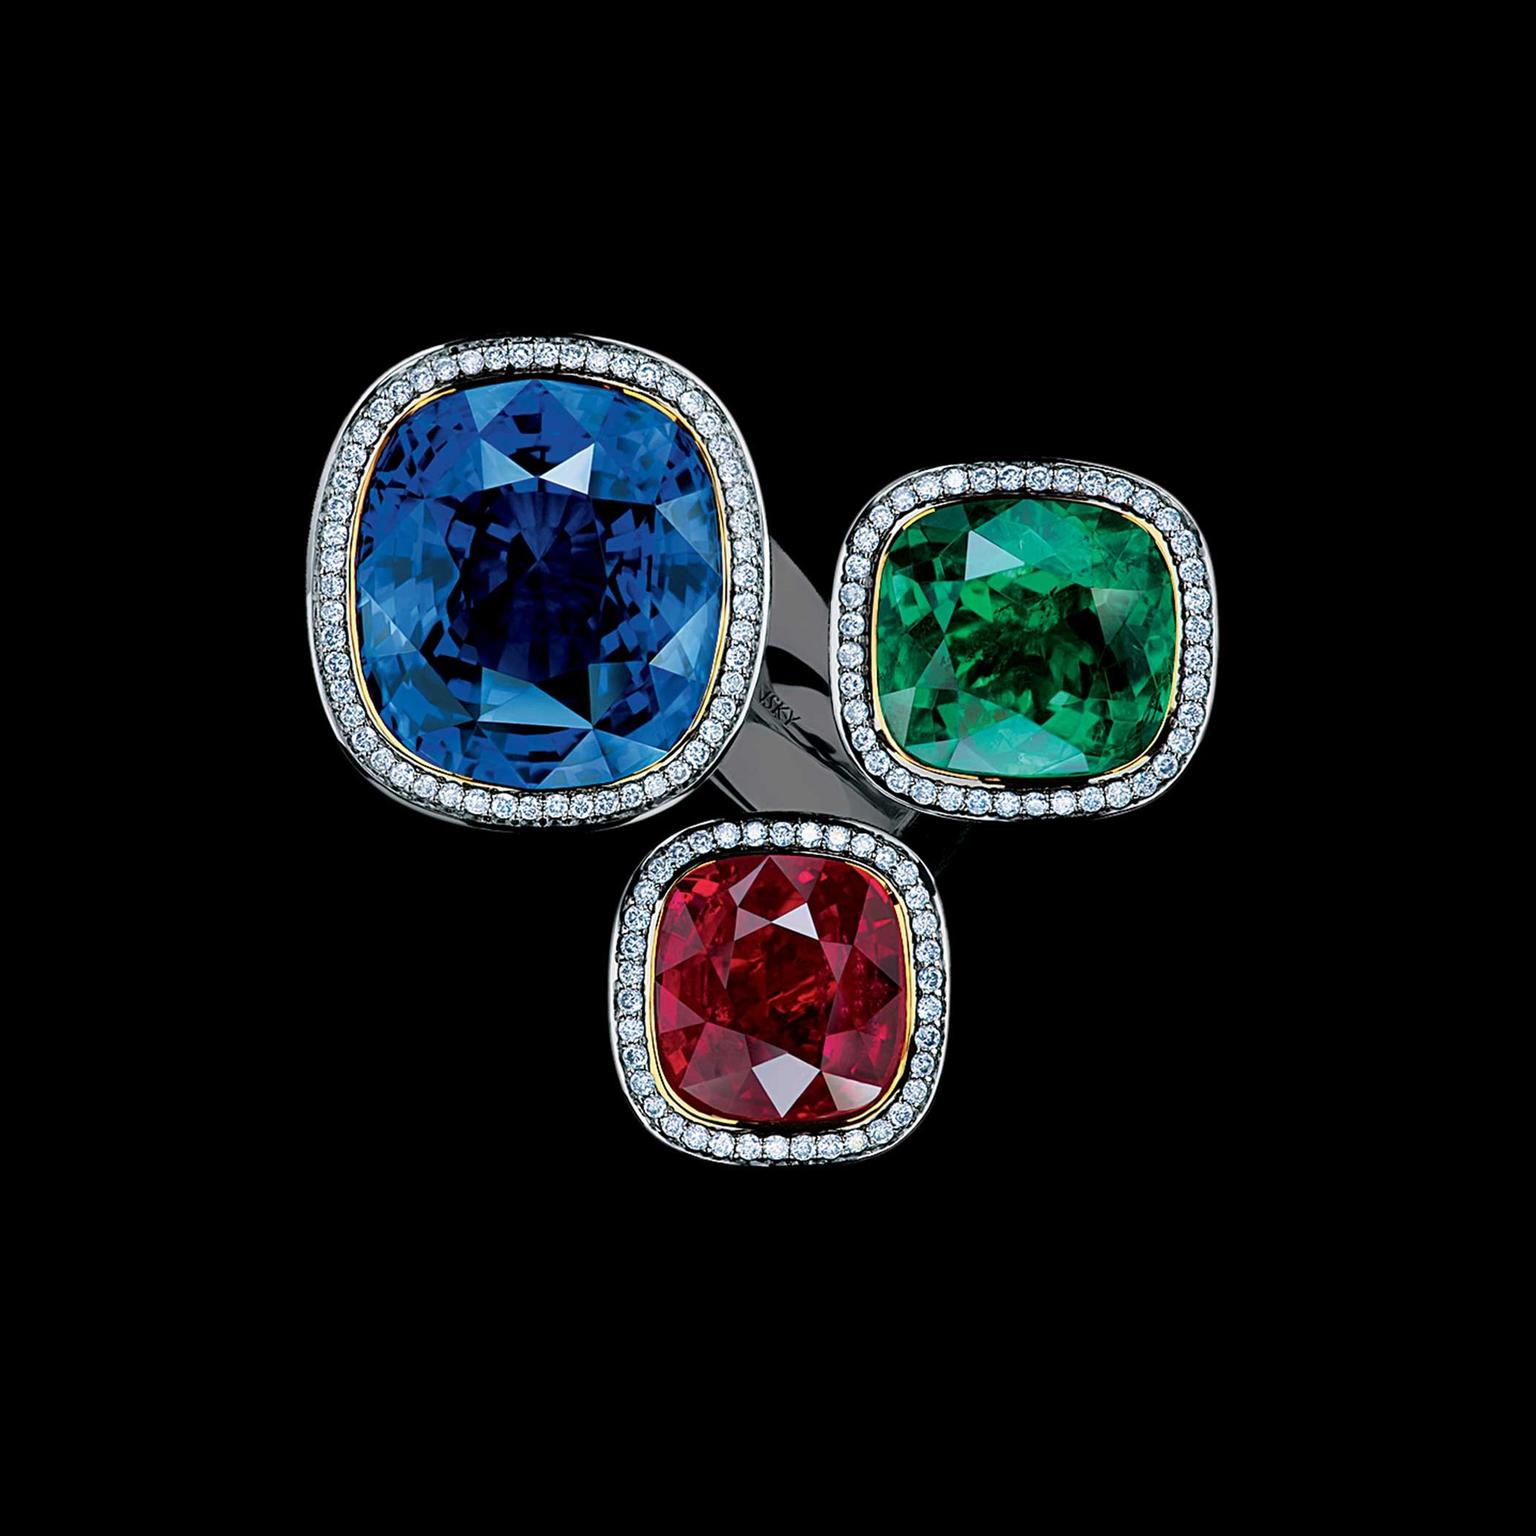 Maxim V Art Stones ring with emerald, ruby and sapphire top view